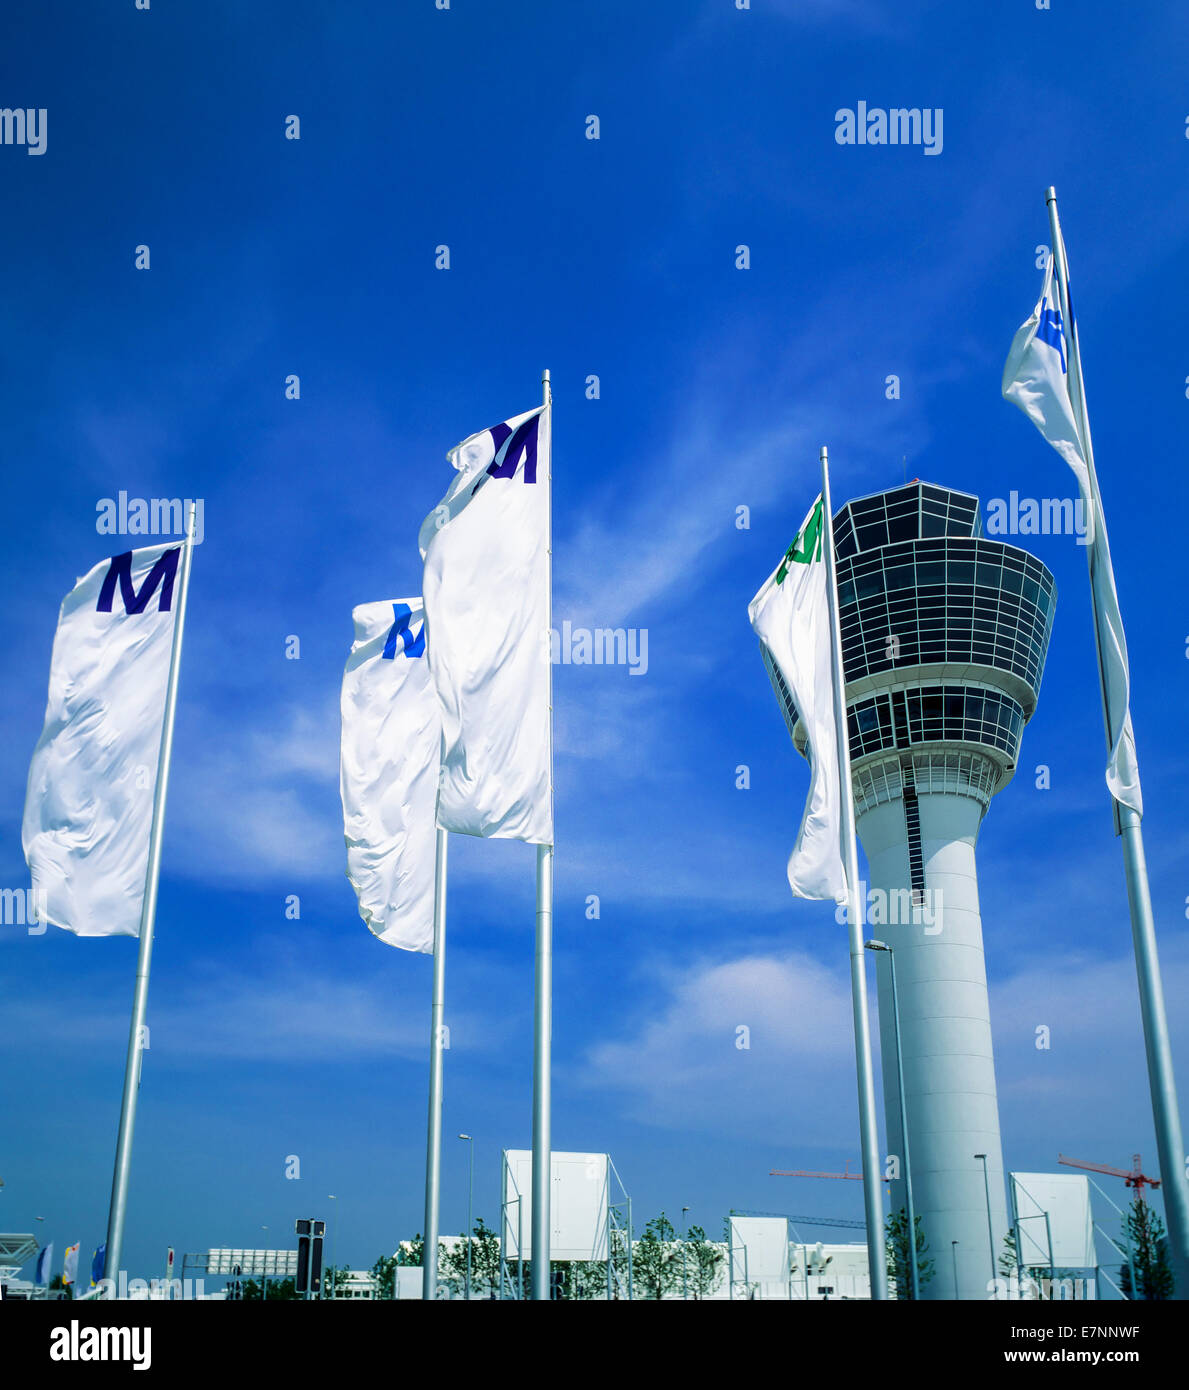 Flags and control tower at Franz-Joseph Strauss airport Munich Bavaria Germany Europe - Stock Image